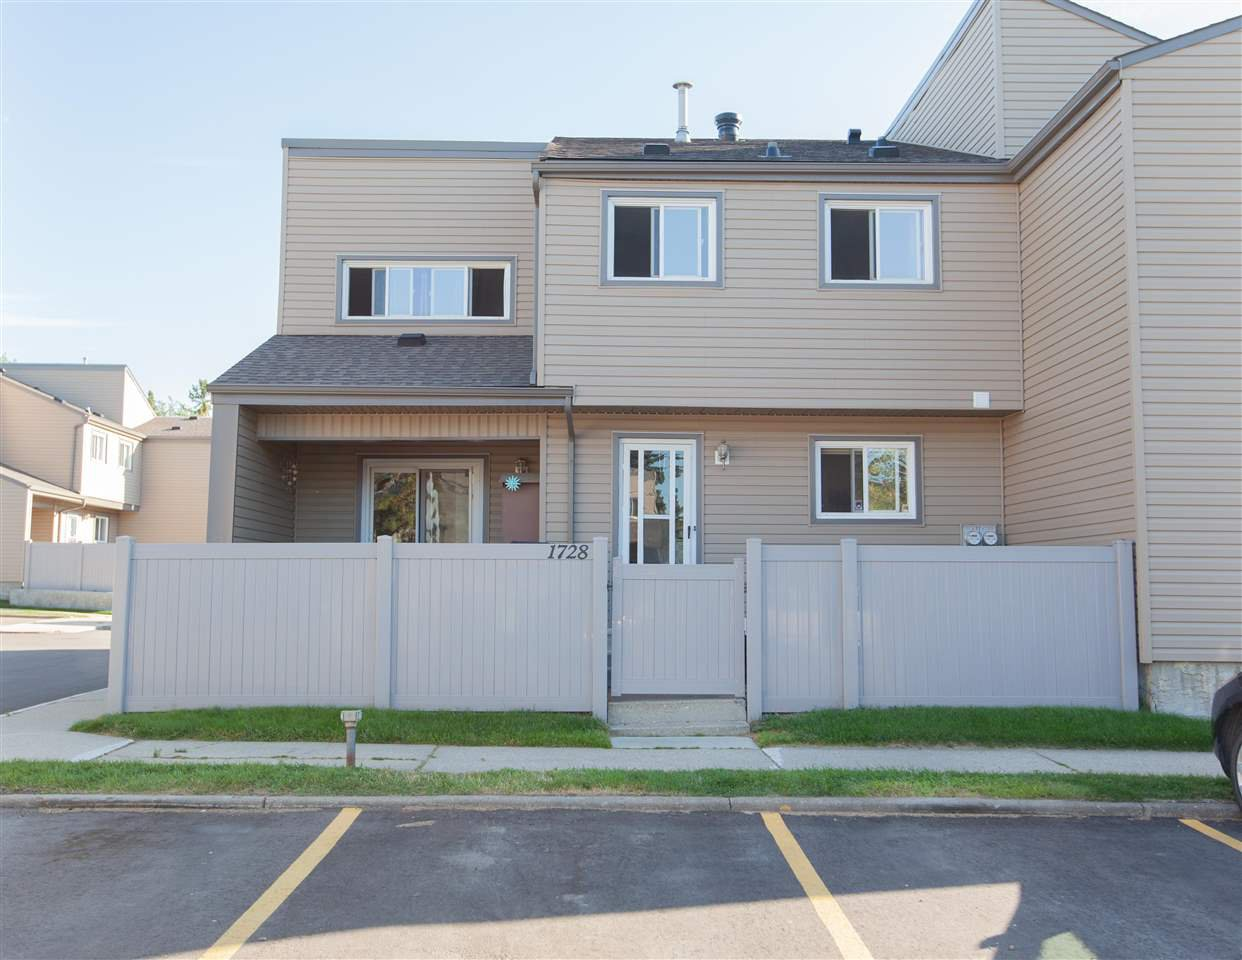 Main Photo: 1728 LAKEWOOD Road S in Edmonton: Zone 29 Townhouse for sale : MLS®# E4214059